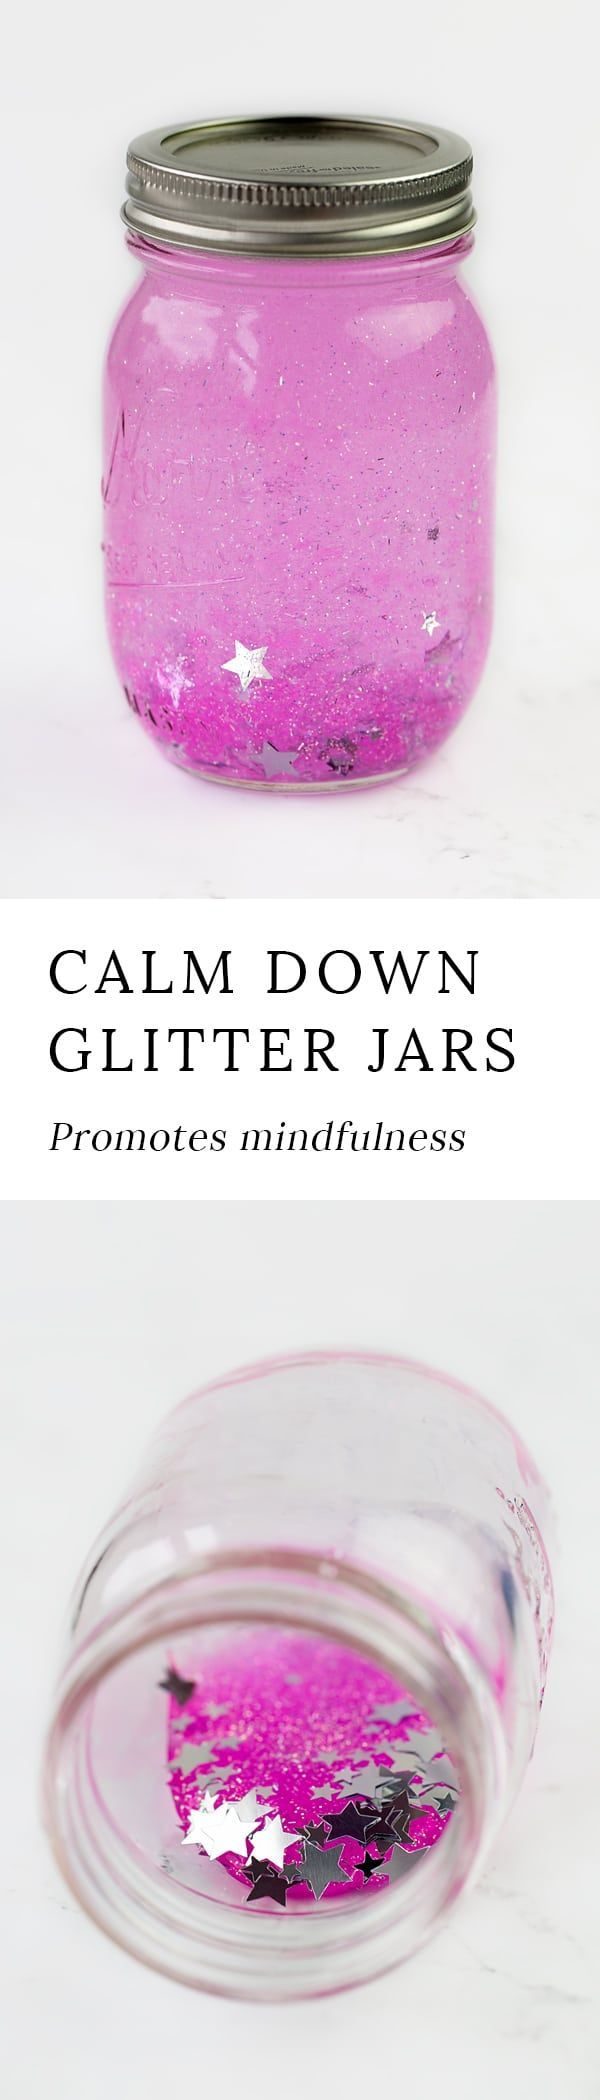 Mindfulness is an important skill for kids to develop. Learn how to make a glitter timer to promote mindfulness and calm in your home or classroom.